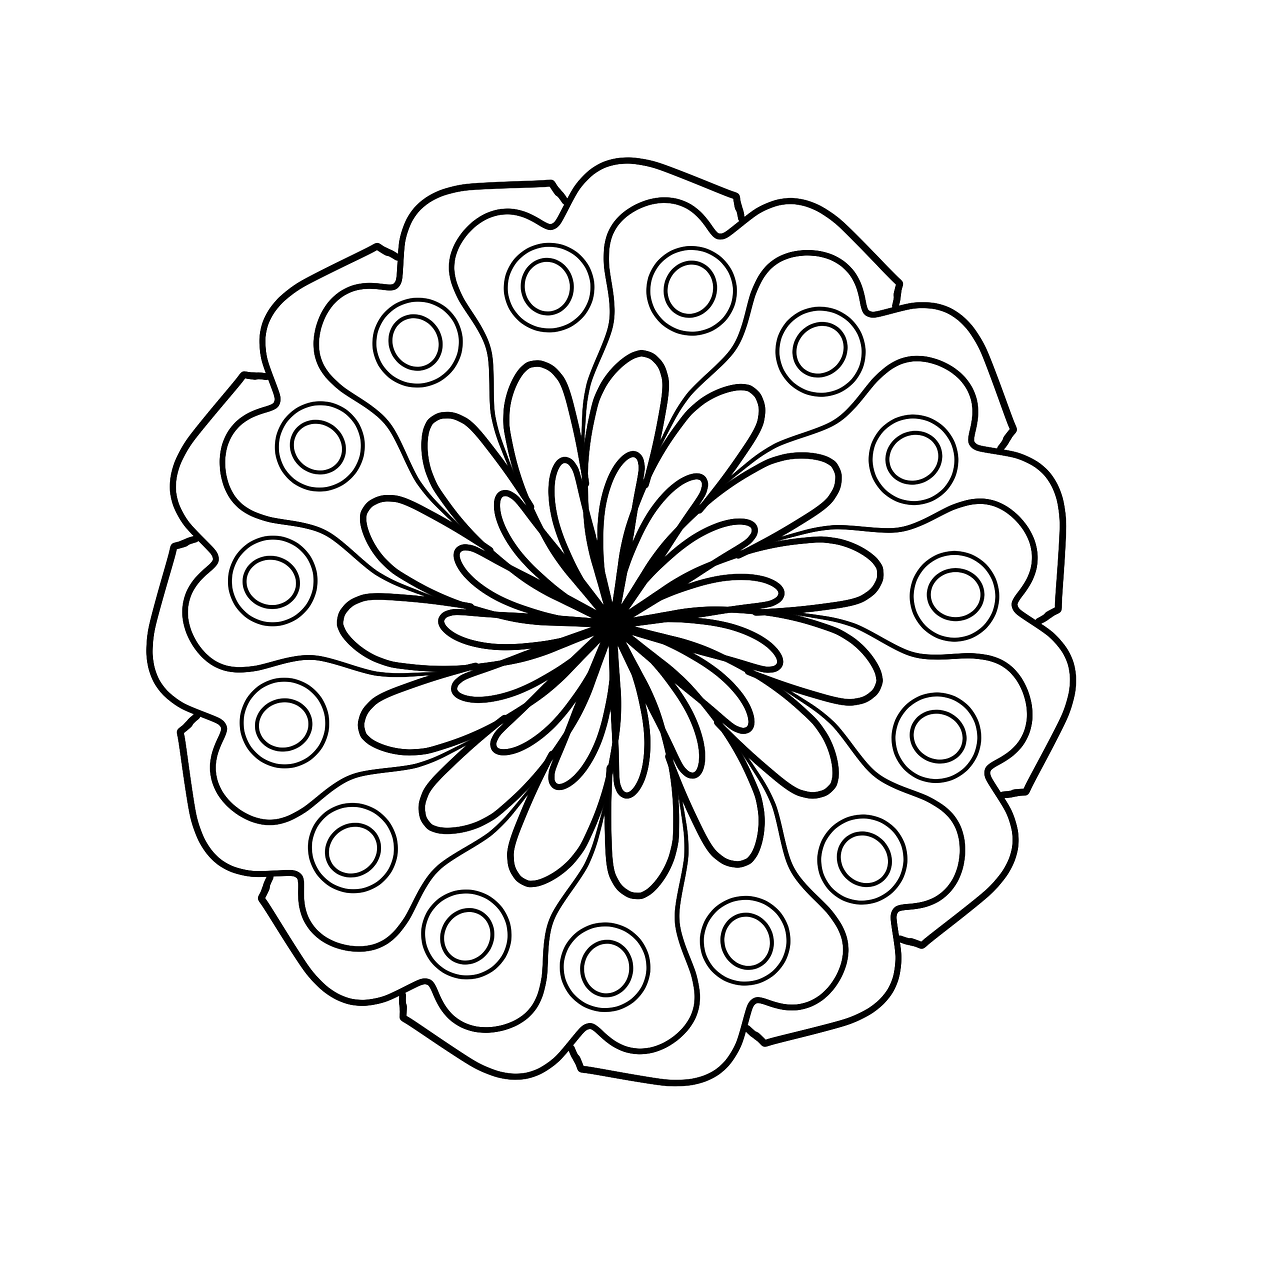 moon mandala coloring pages 25 best ideas about moon mandala no pinterest mandala pages coloring mandala moon